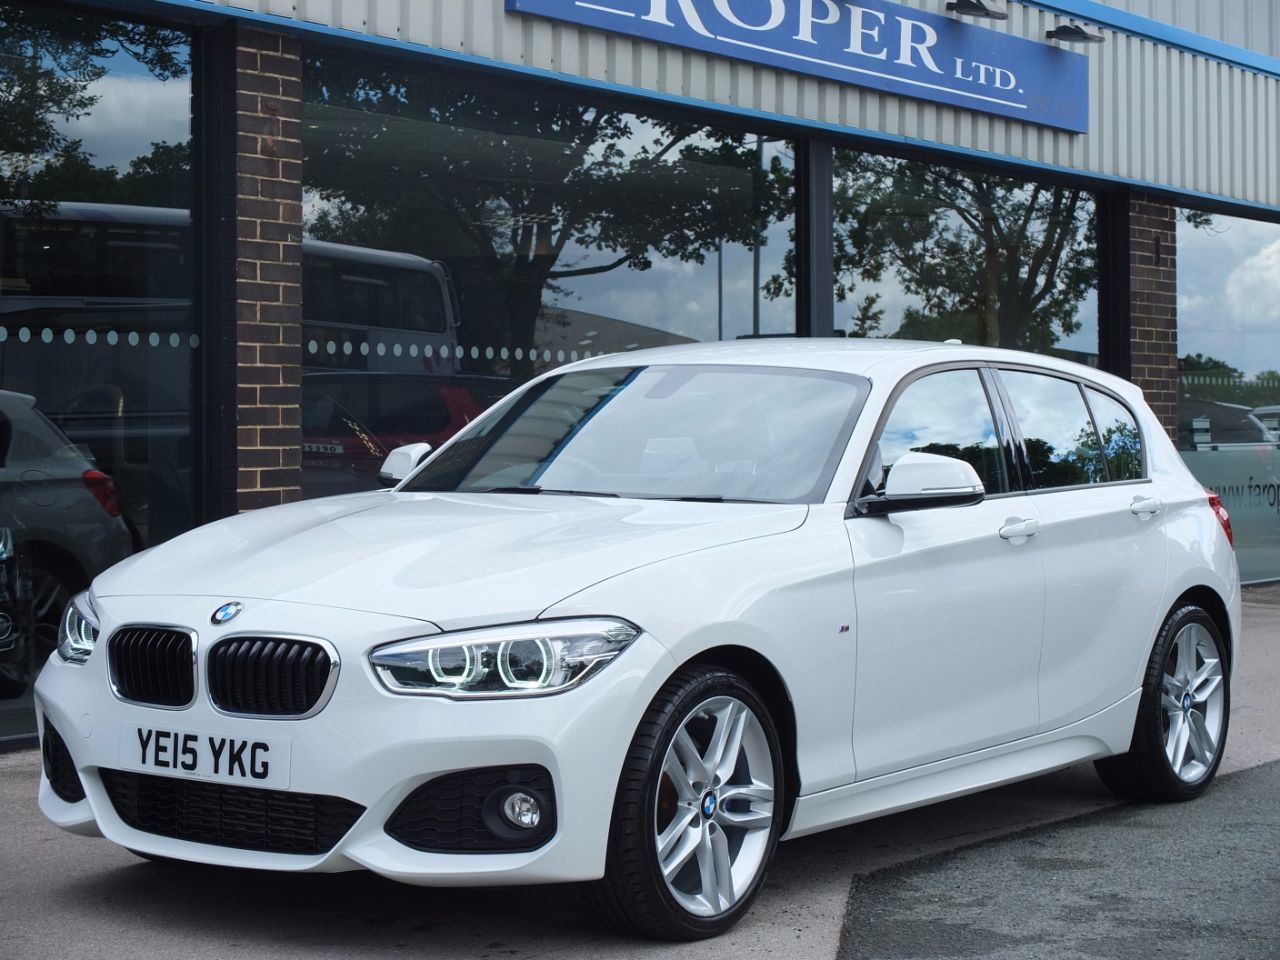 BMW 1 Series 2.0 125d M Sport 5 door Auto (Leather, Media Pack Professional) Hatchback Diesel Alpine WhiteBMW 1 Series 2.0 125d M Sport 5 door Auto (Leather, Media Pack Professional) Hatchback Diesel Alpine White at fa Roper Ltd Bradford